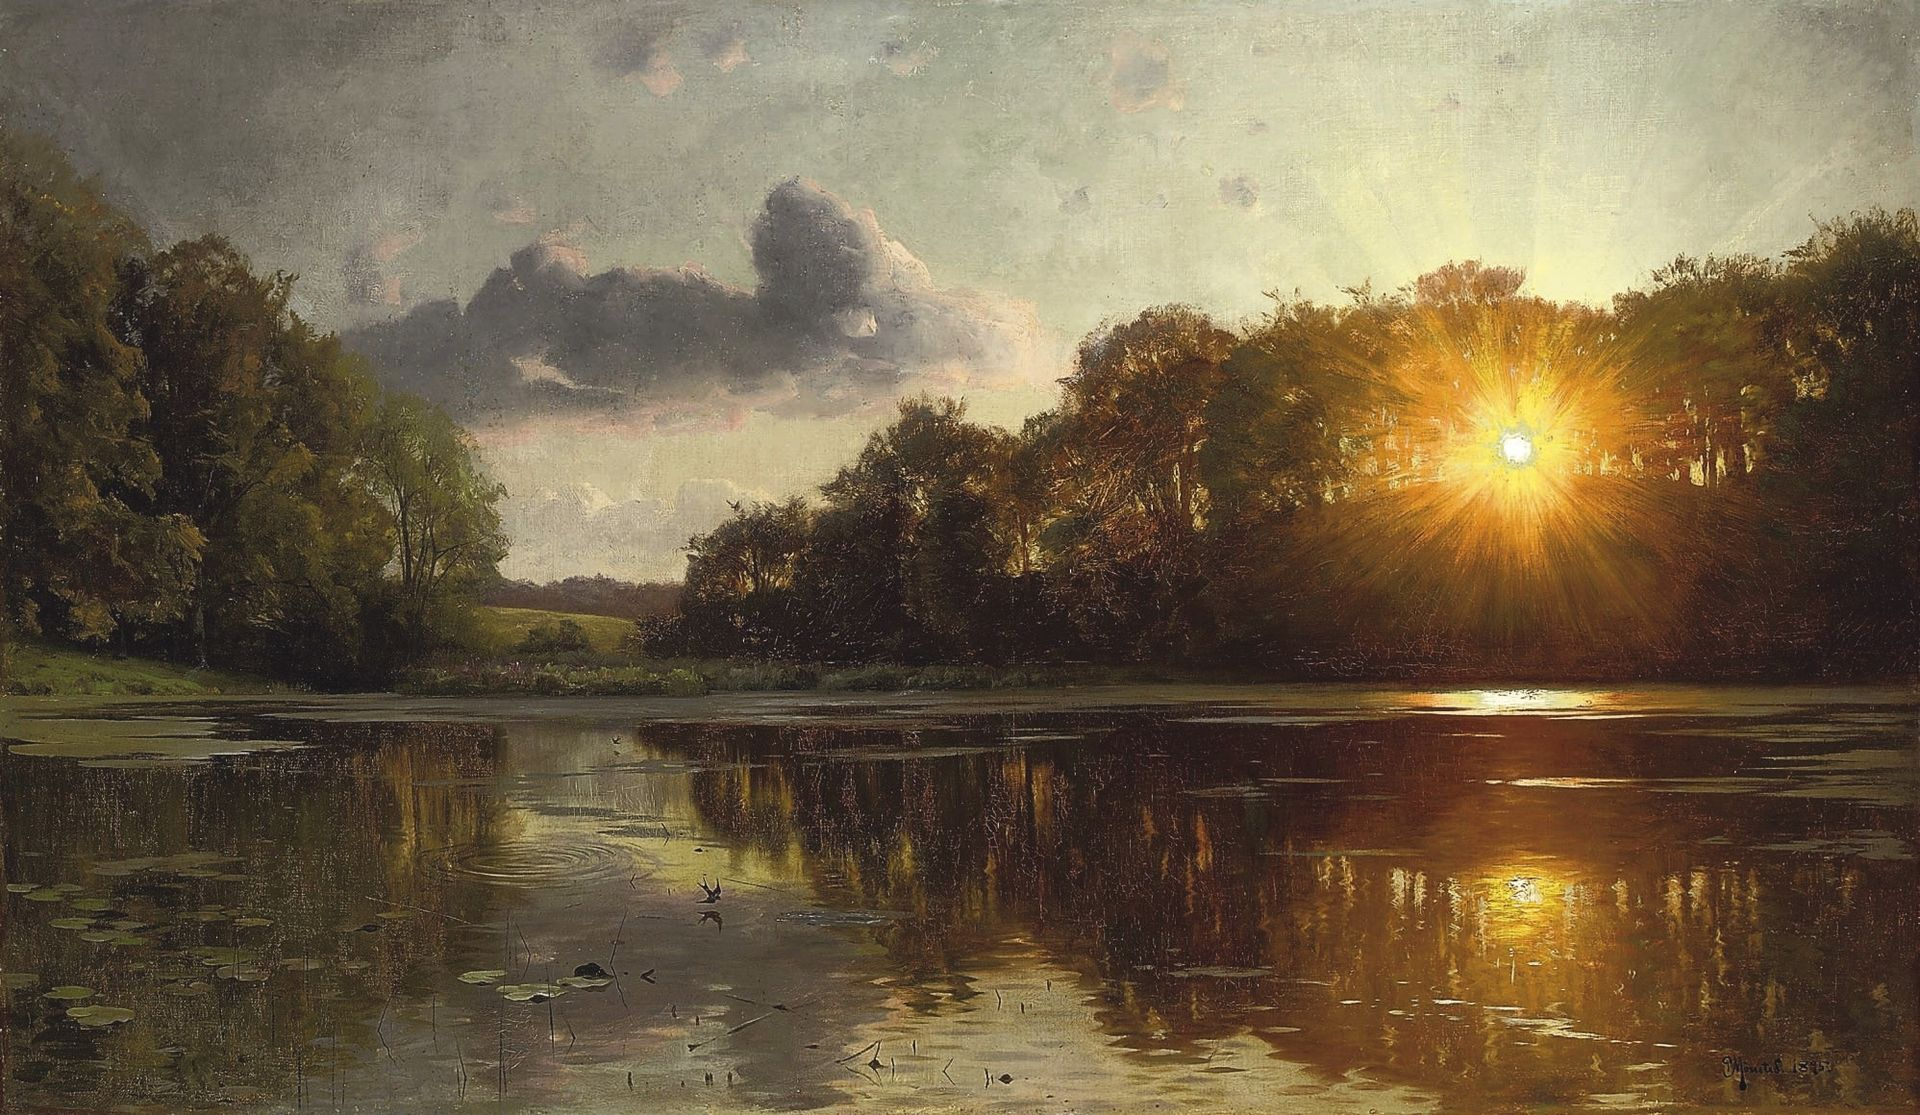 Peter Mork Monsted, Sunset Over A Forest Lake